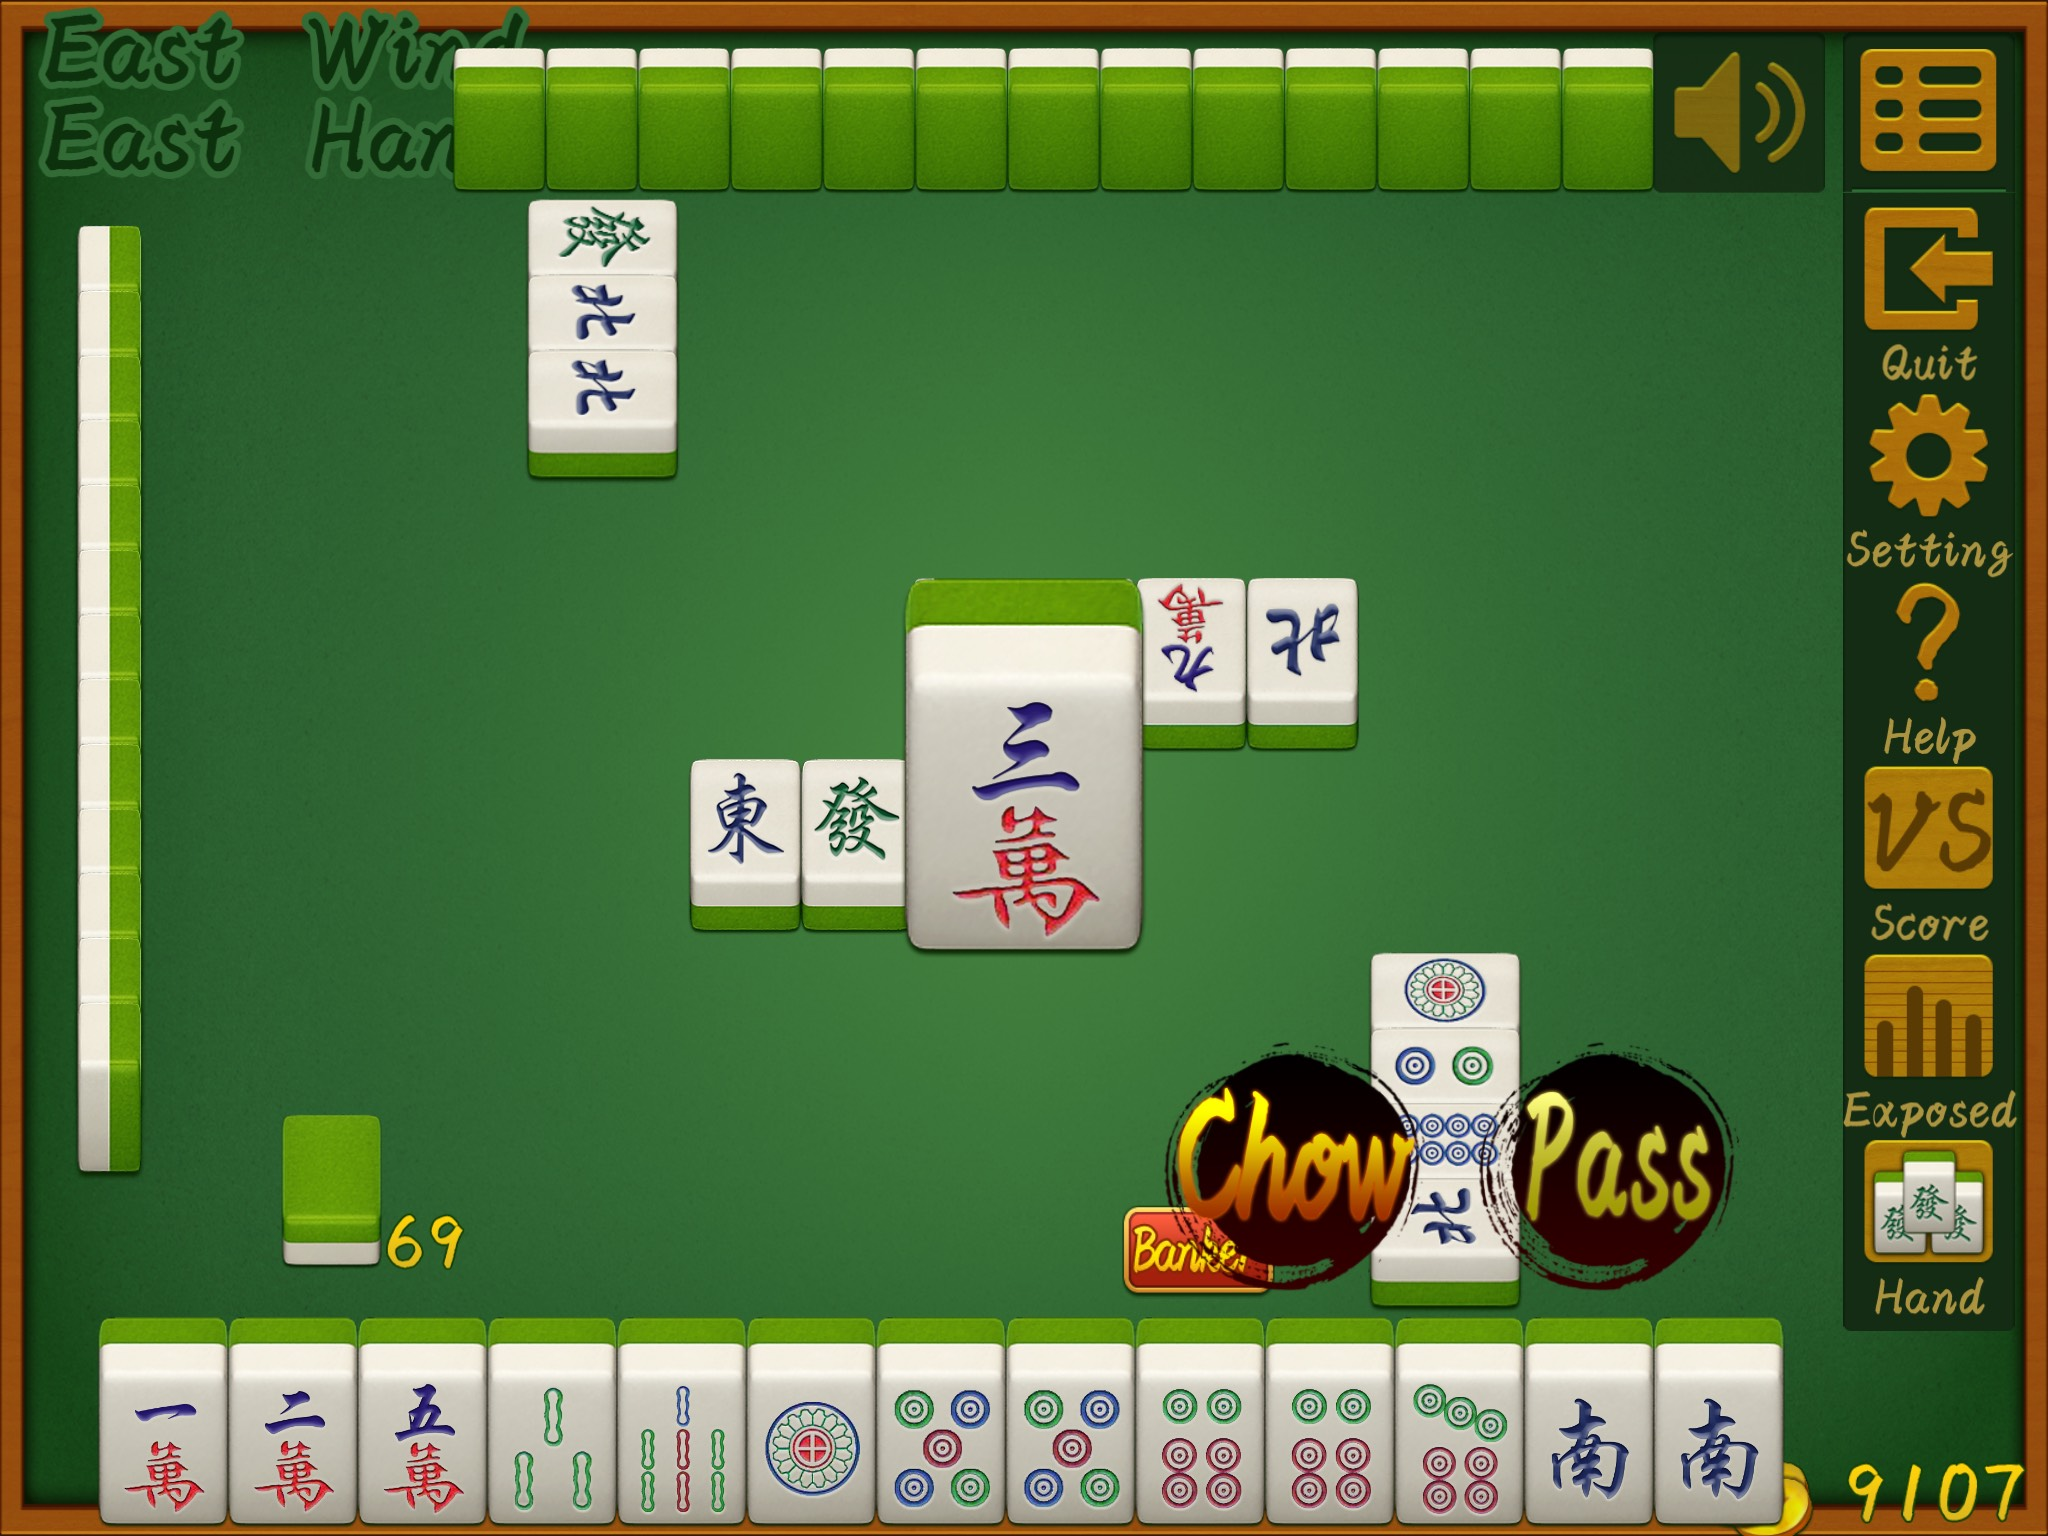 Mahjong 13 Tiles (ISO) by Zhengzhou Anlansiqin Automobile Service Co., Ltd., recommended app for people living with dementia